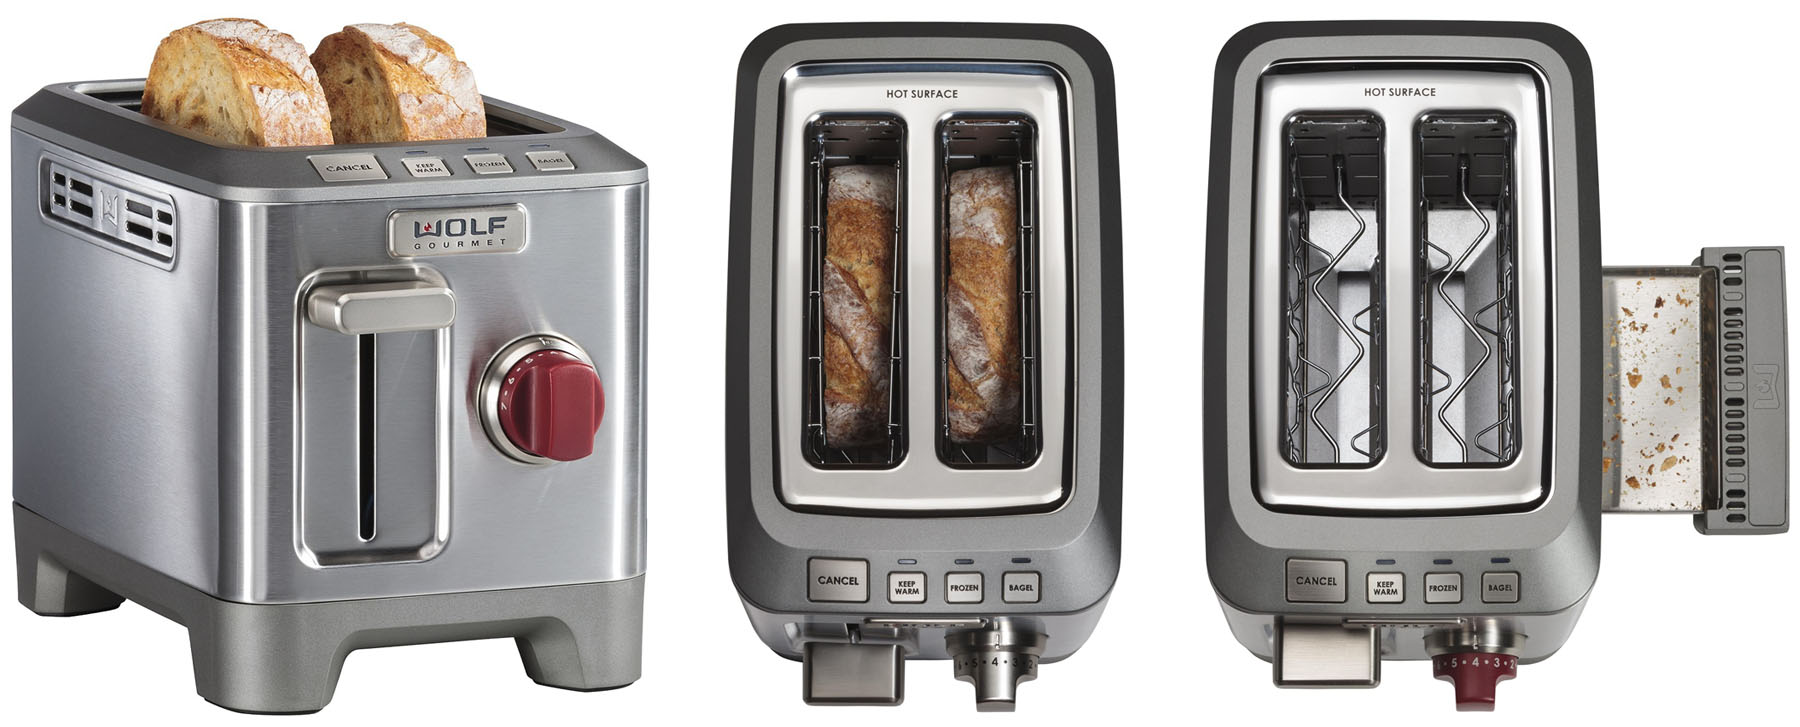 Side and top view of the Wolf 2 slice toaster with crumb tray open and closed